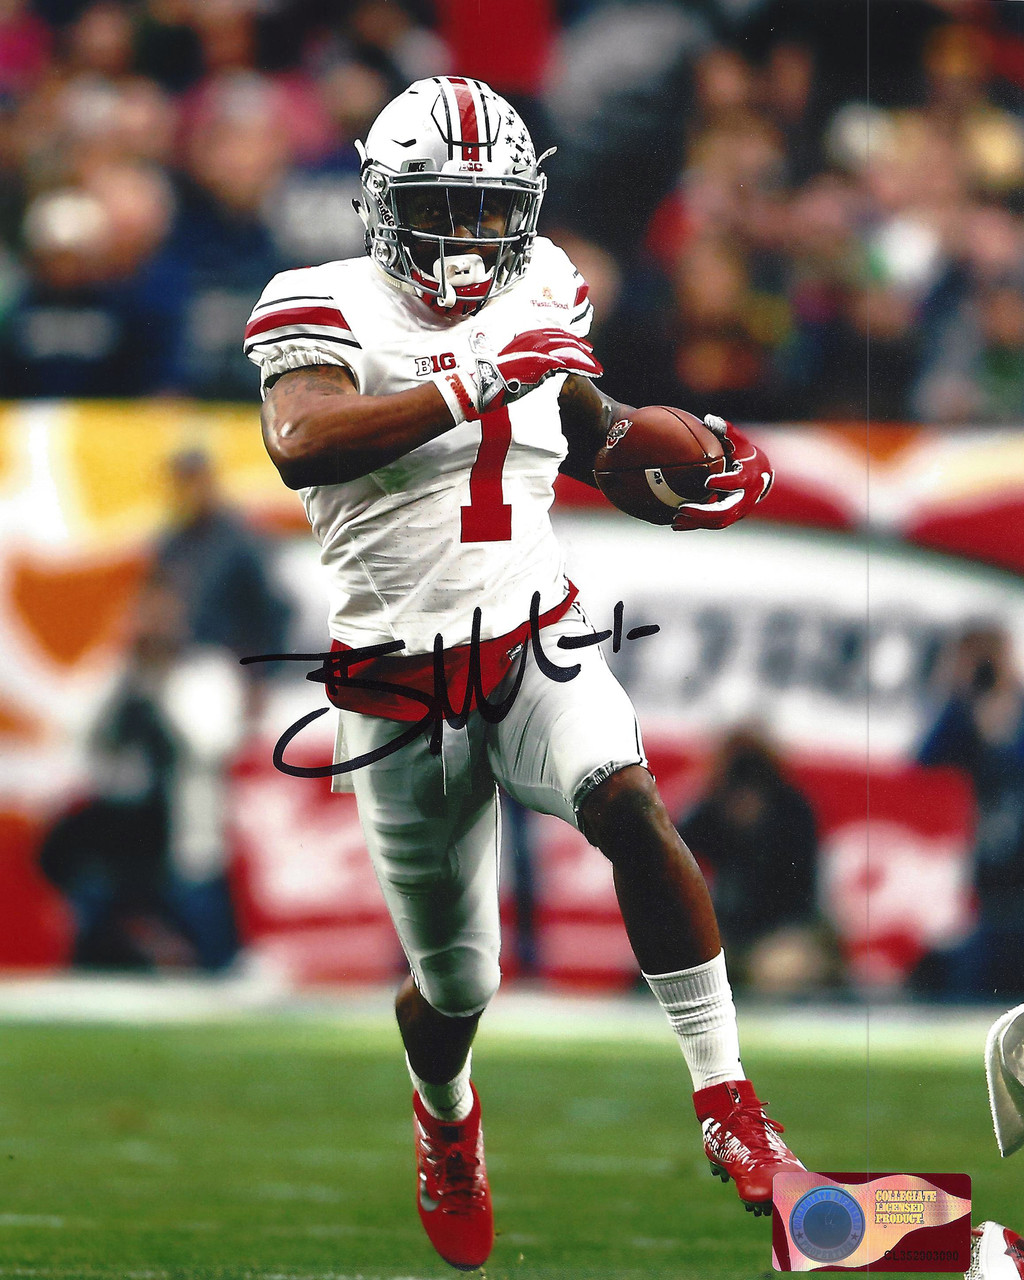 finest selection 8a84d b2163 Braxton Miller OSU 8-1 8x10 Autographed Photo - Certified Authentic